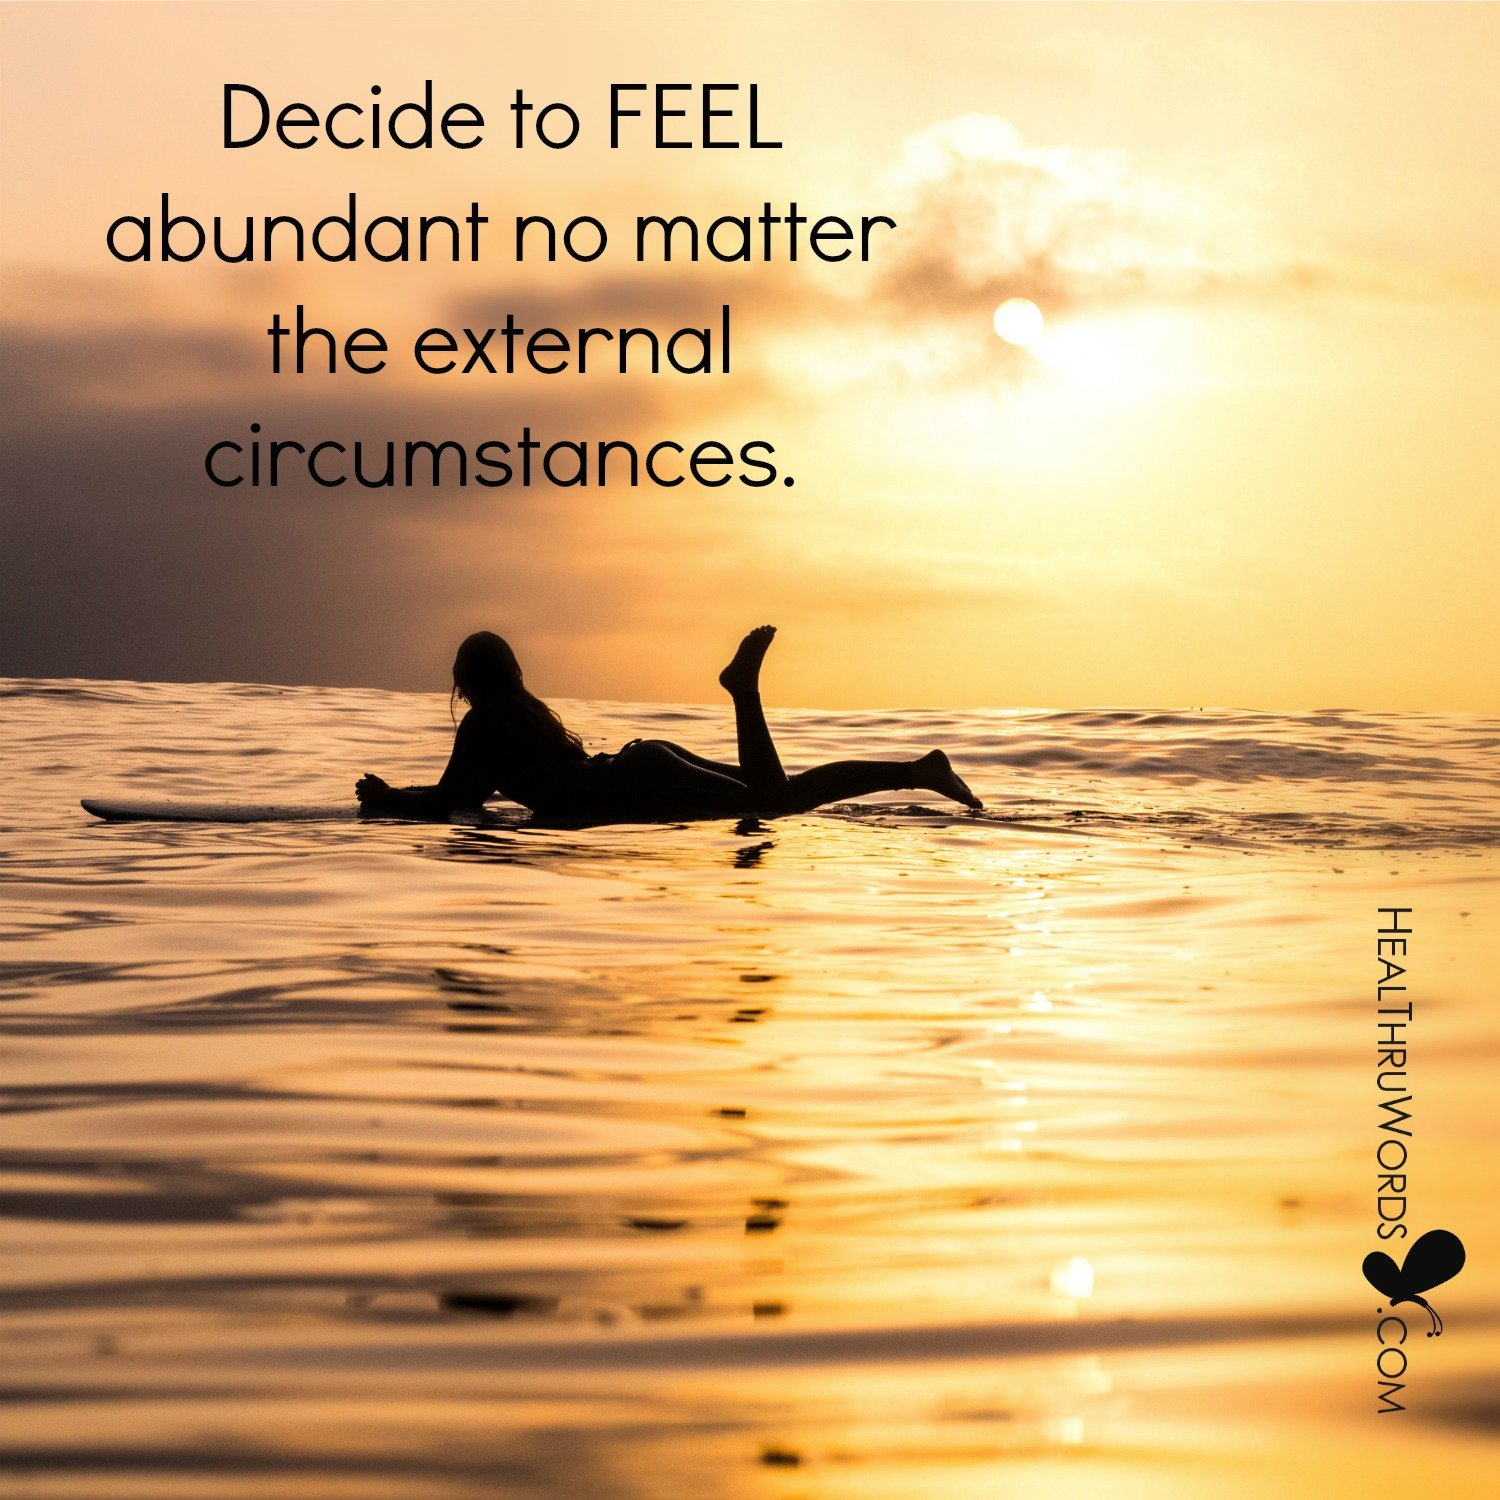 Inspirational Image: Feeling Your Abundance